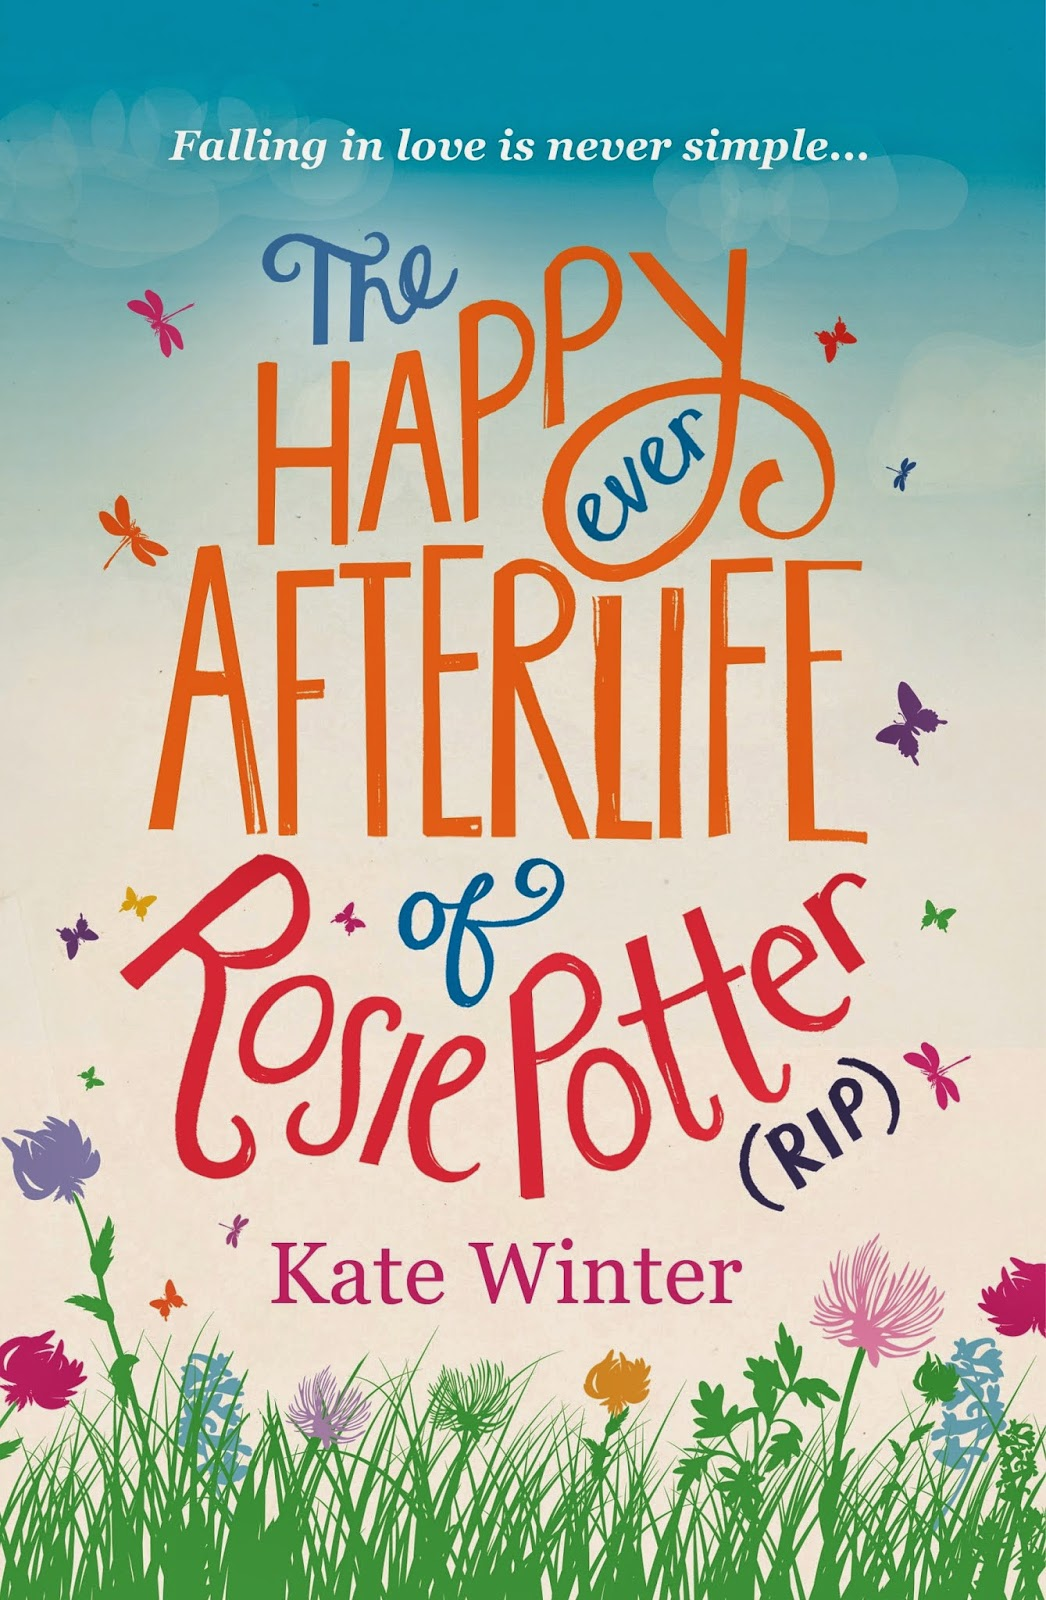 kate-winter-book